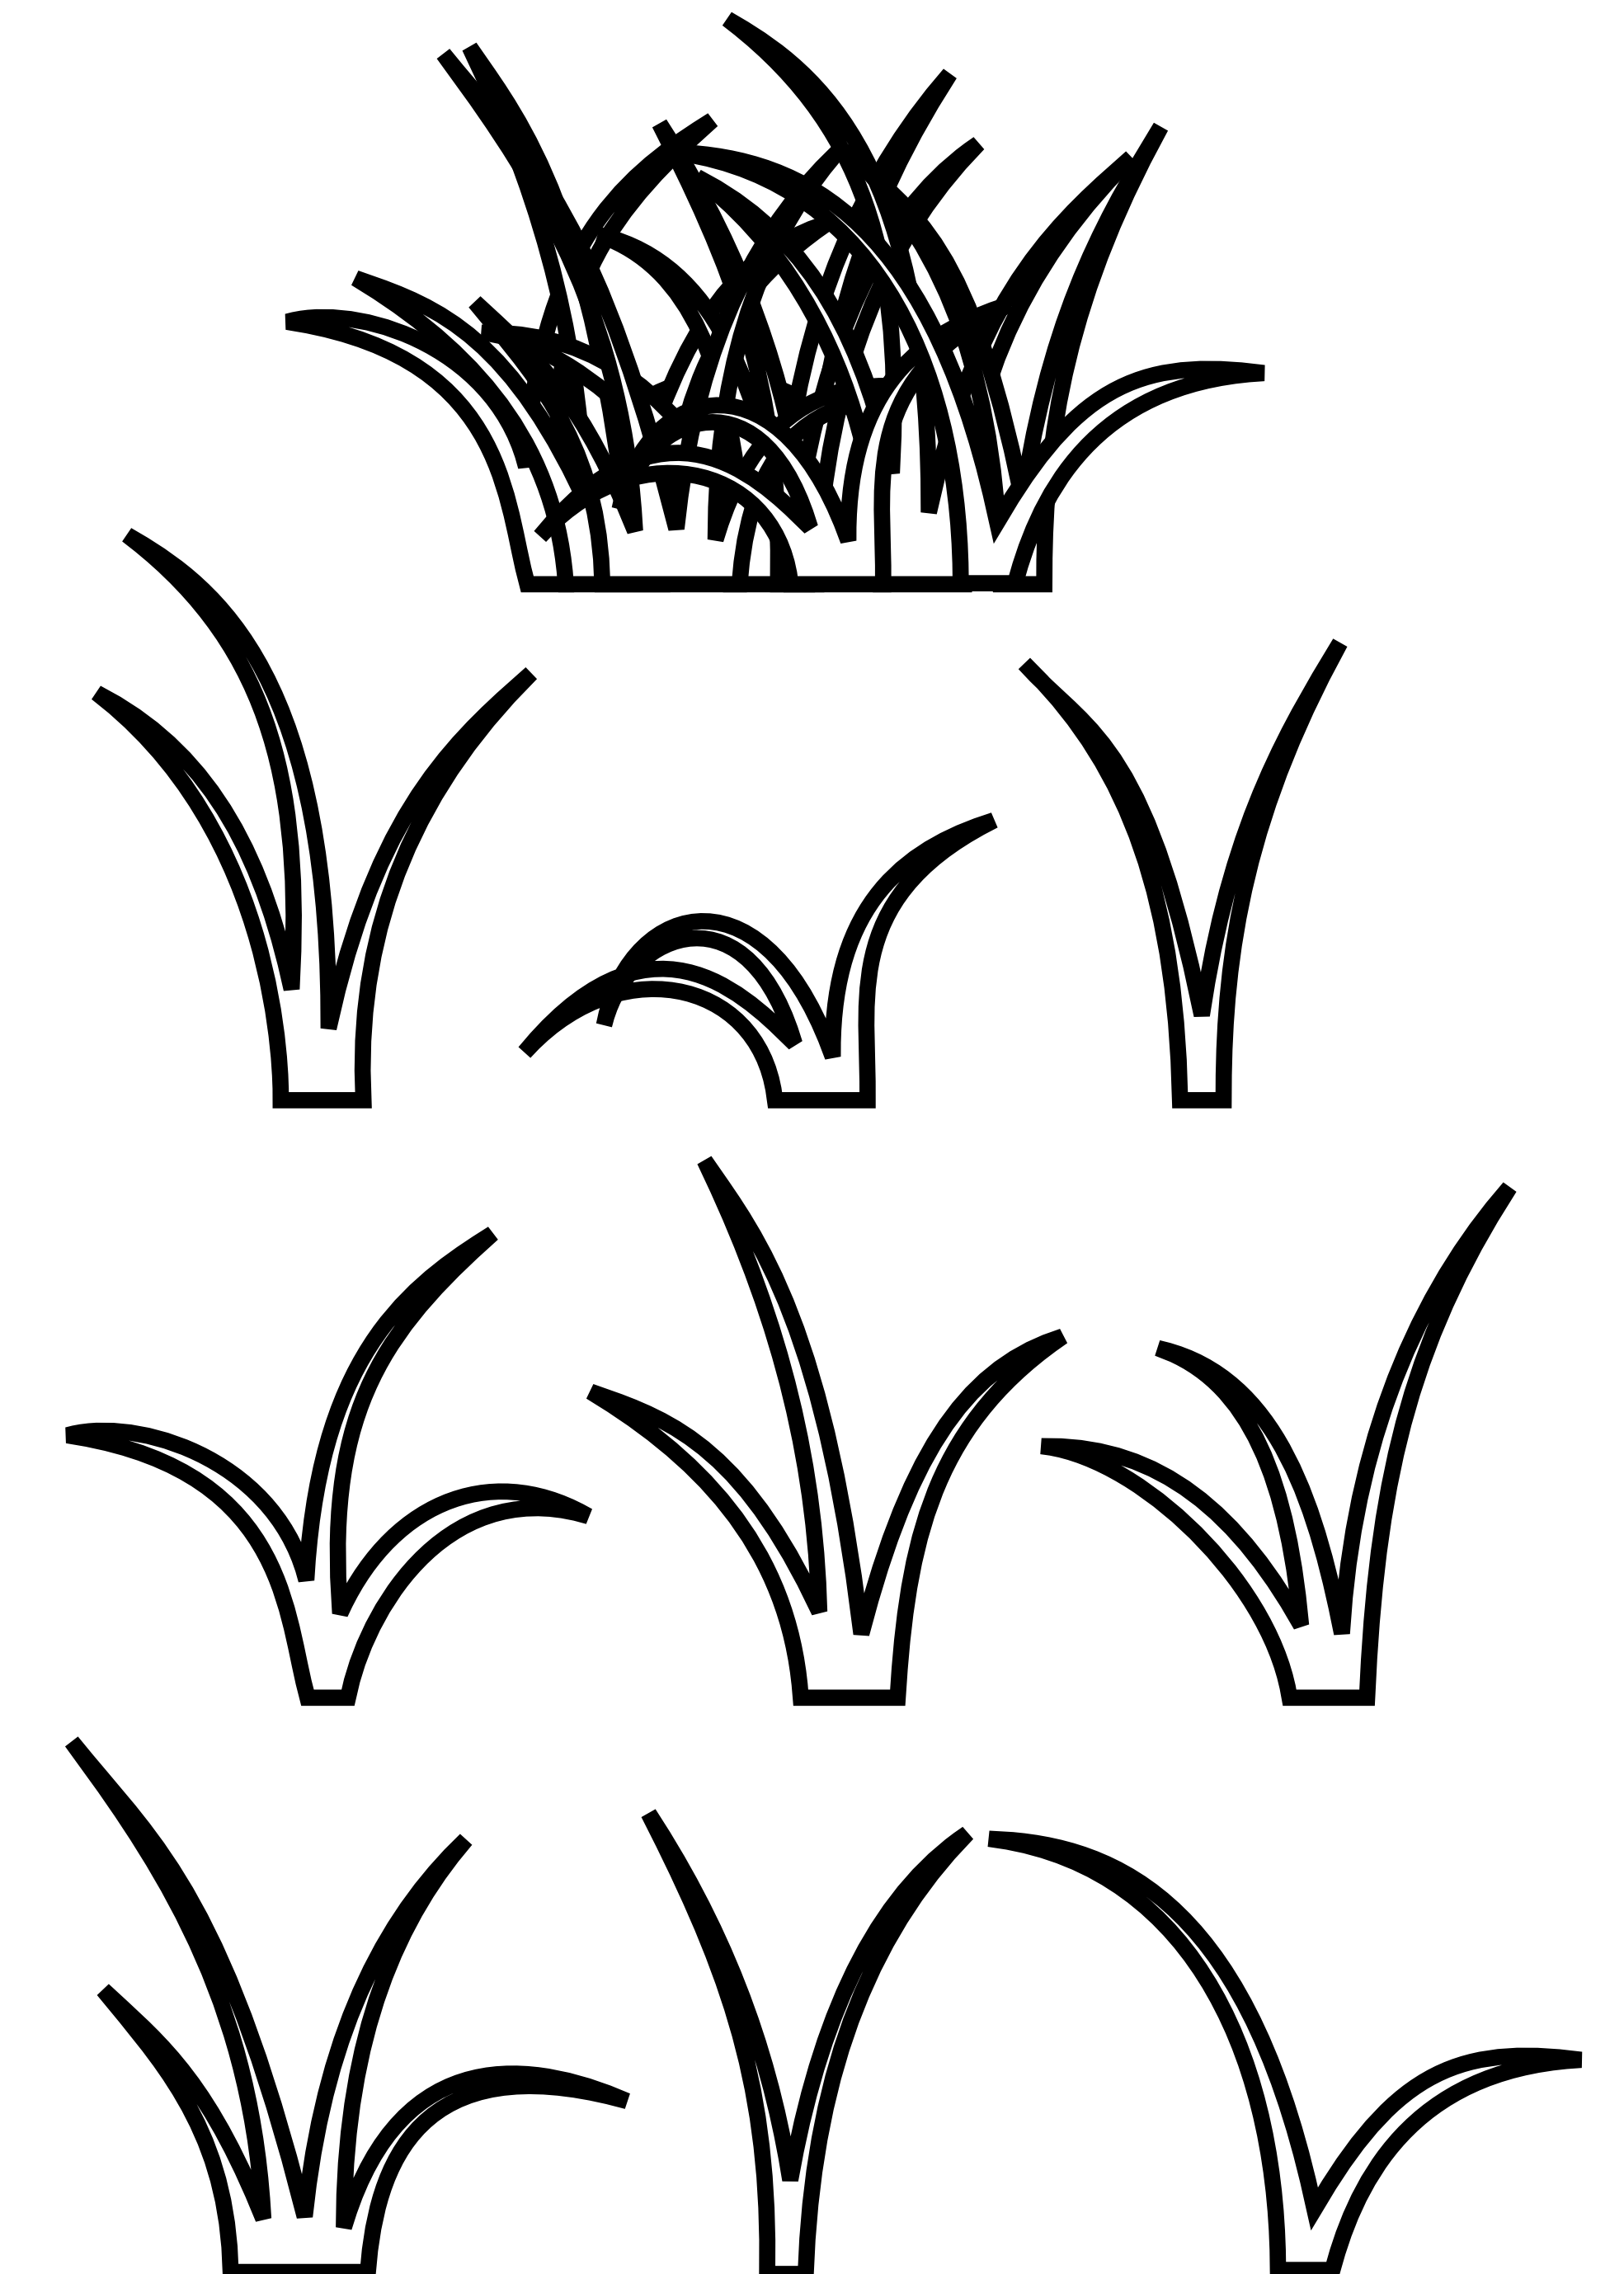 Grass . Flag football clipart black and white